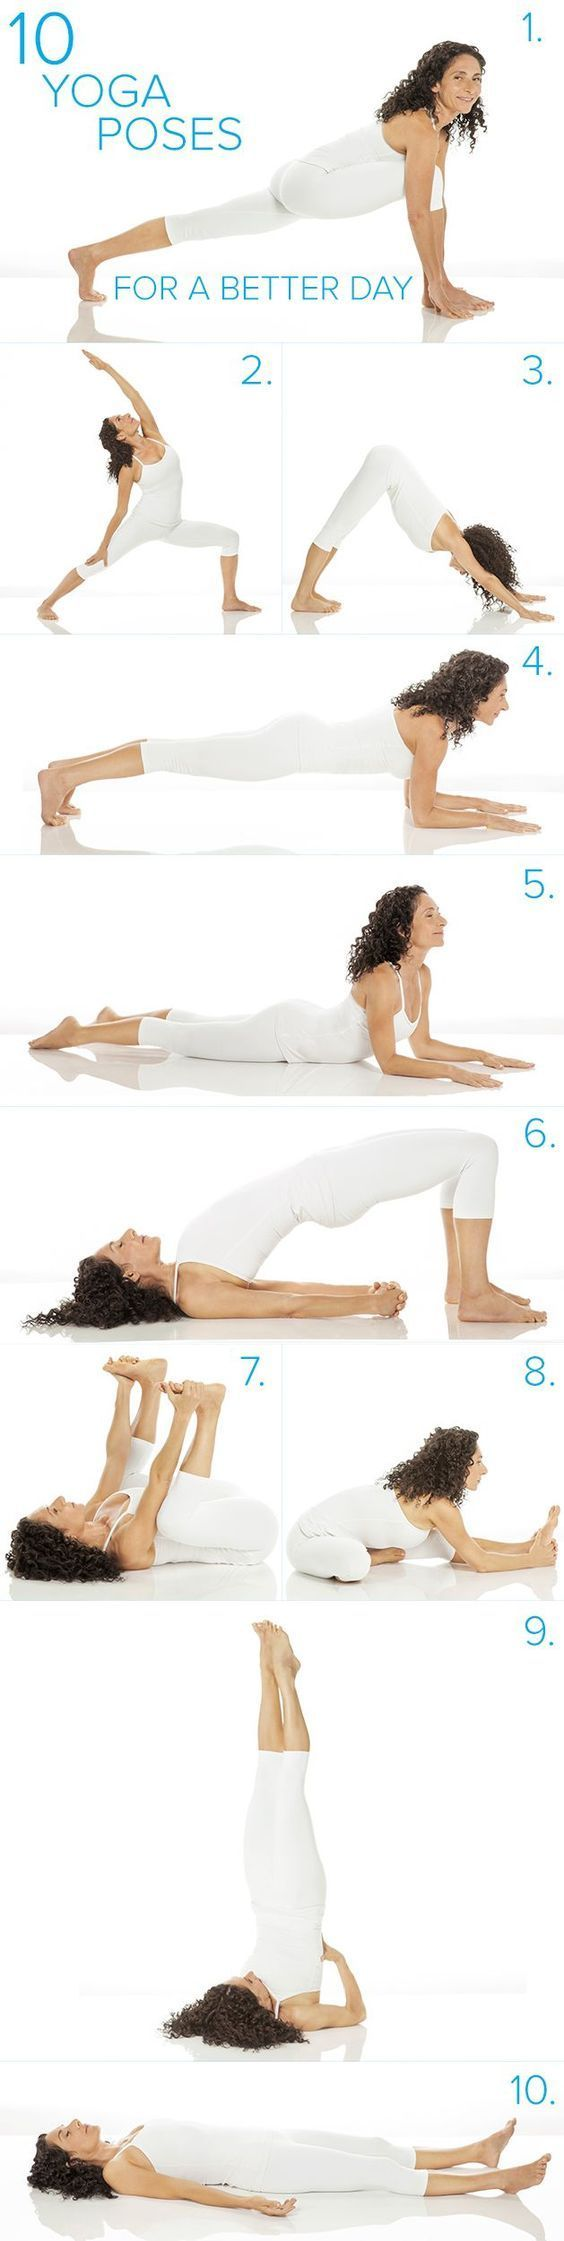 Four Advanced Yoga Poses #cantaps